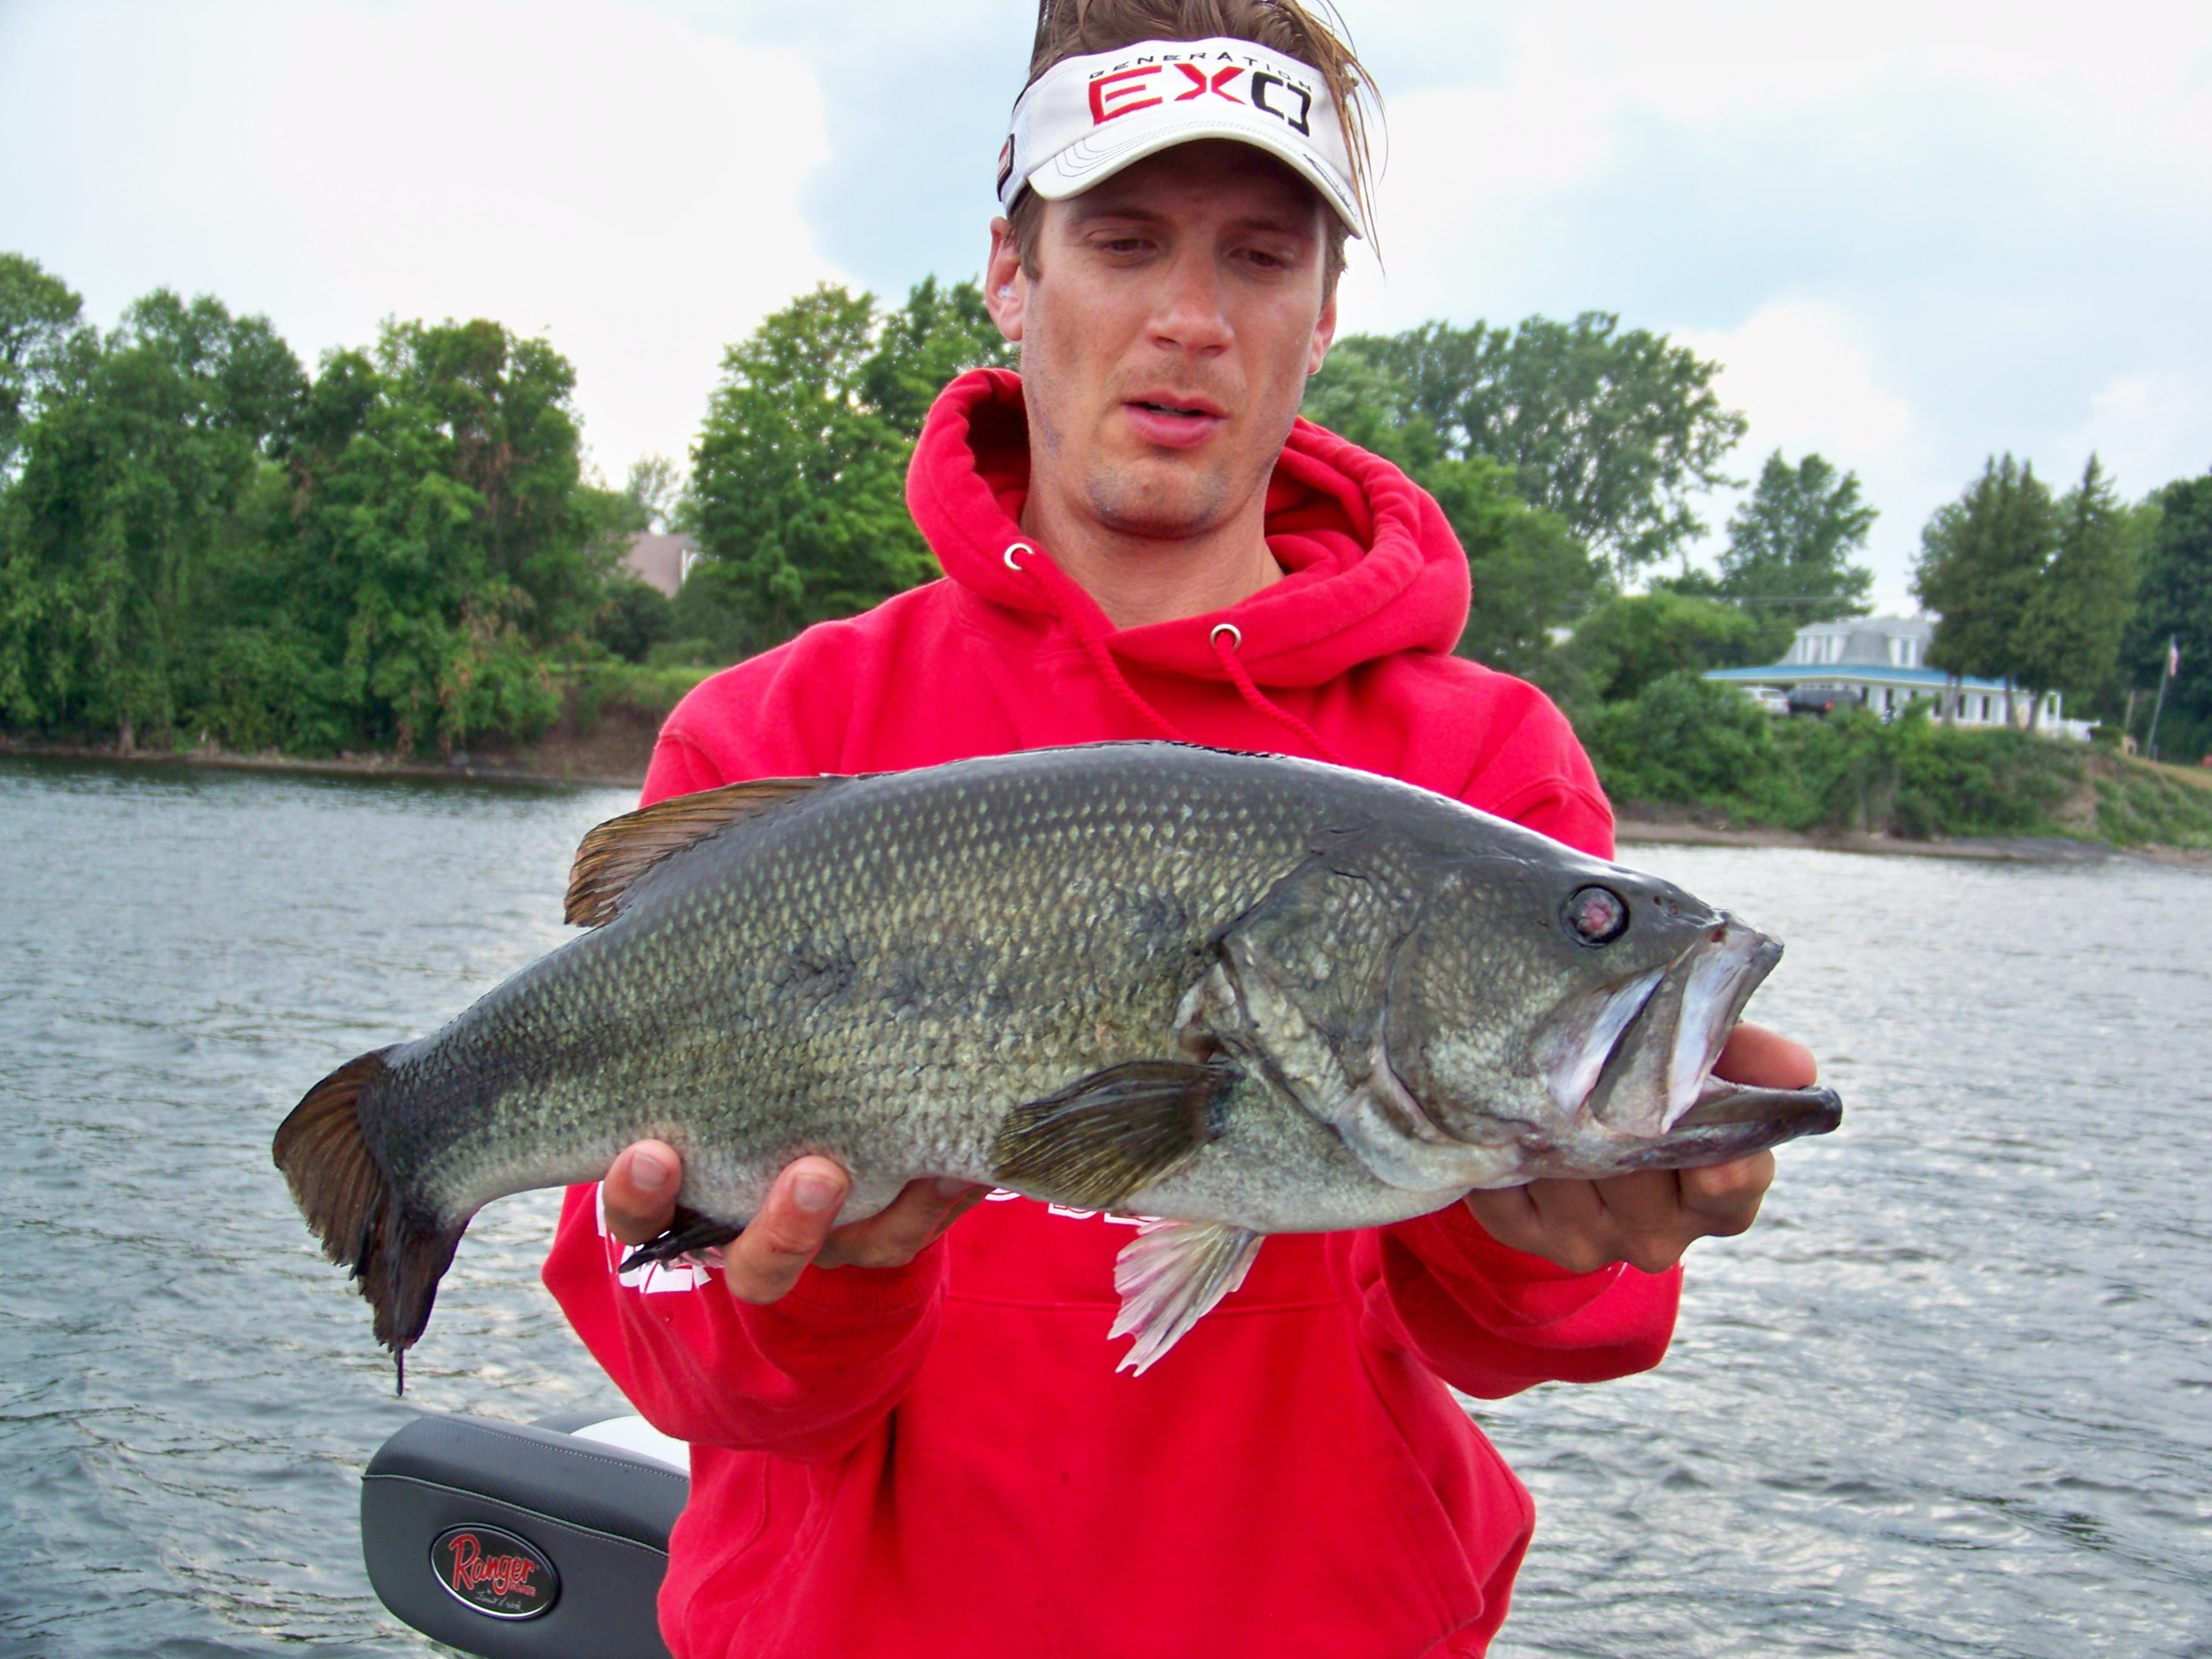 Speaking of largemouth bass, look at this Kicker. Troy has an awesome catch using a jerk bait adjacent a bridge piling. Nice job Troy!